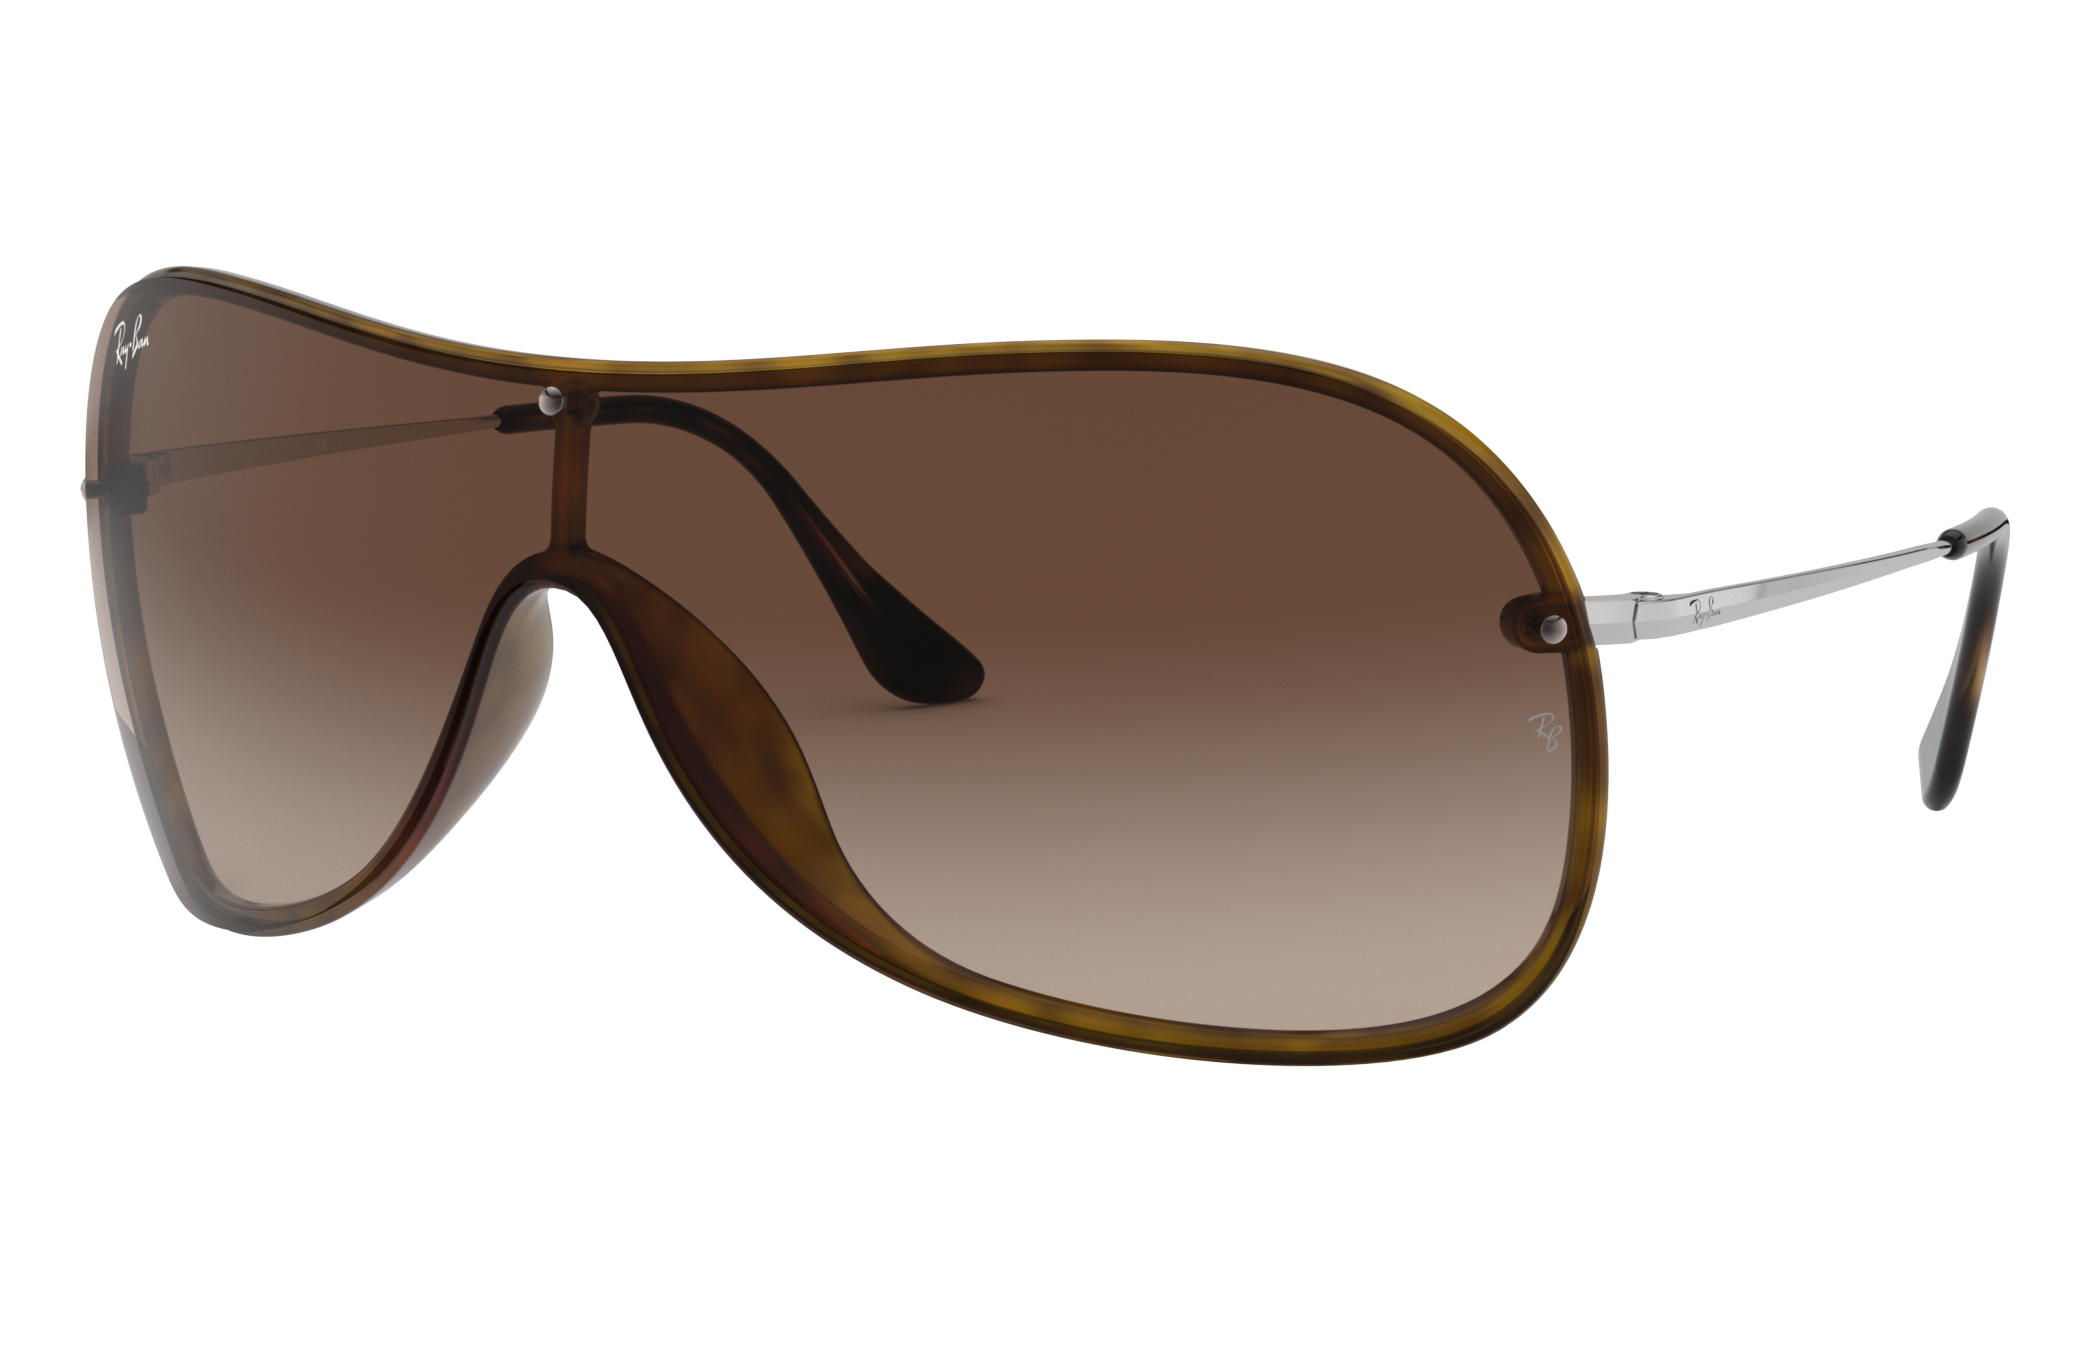 Ray-Ban Rb4411 Silver, Brown Lenses - RB4411